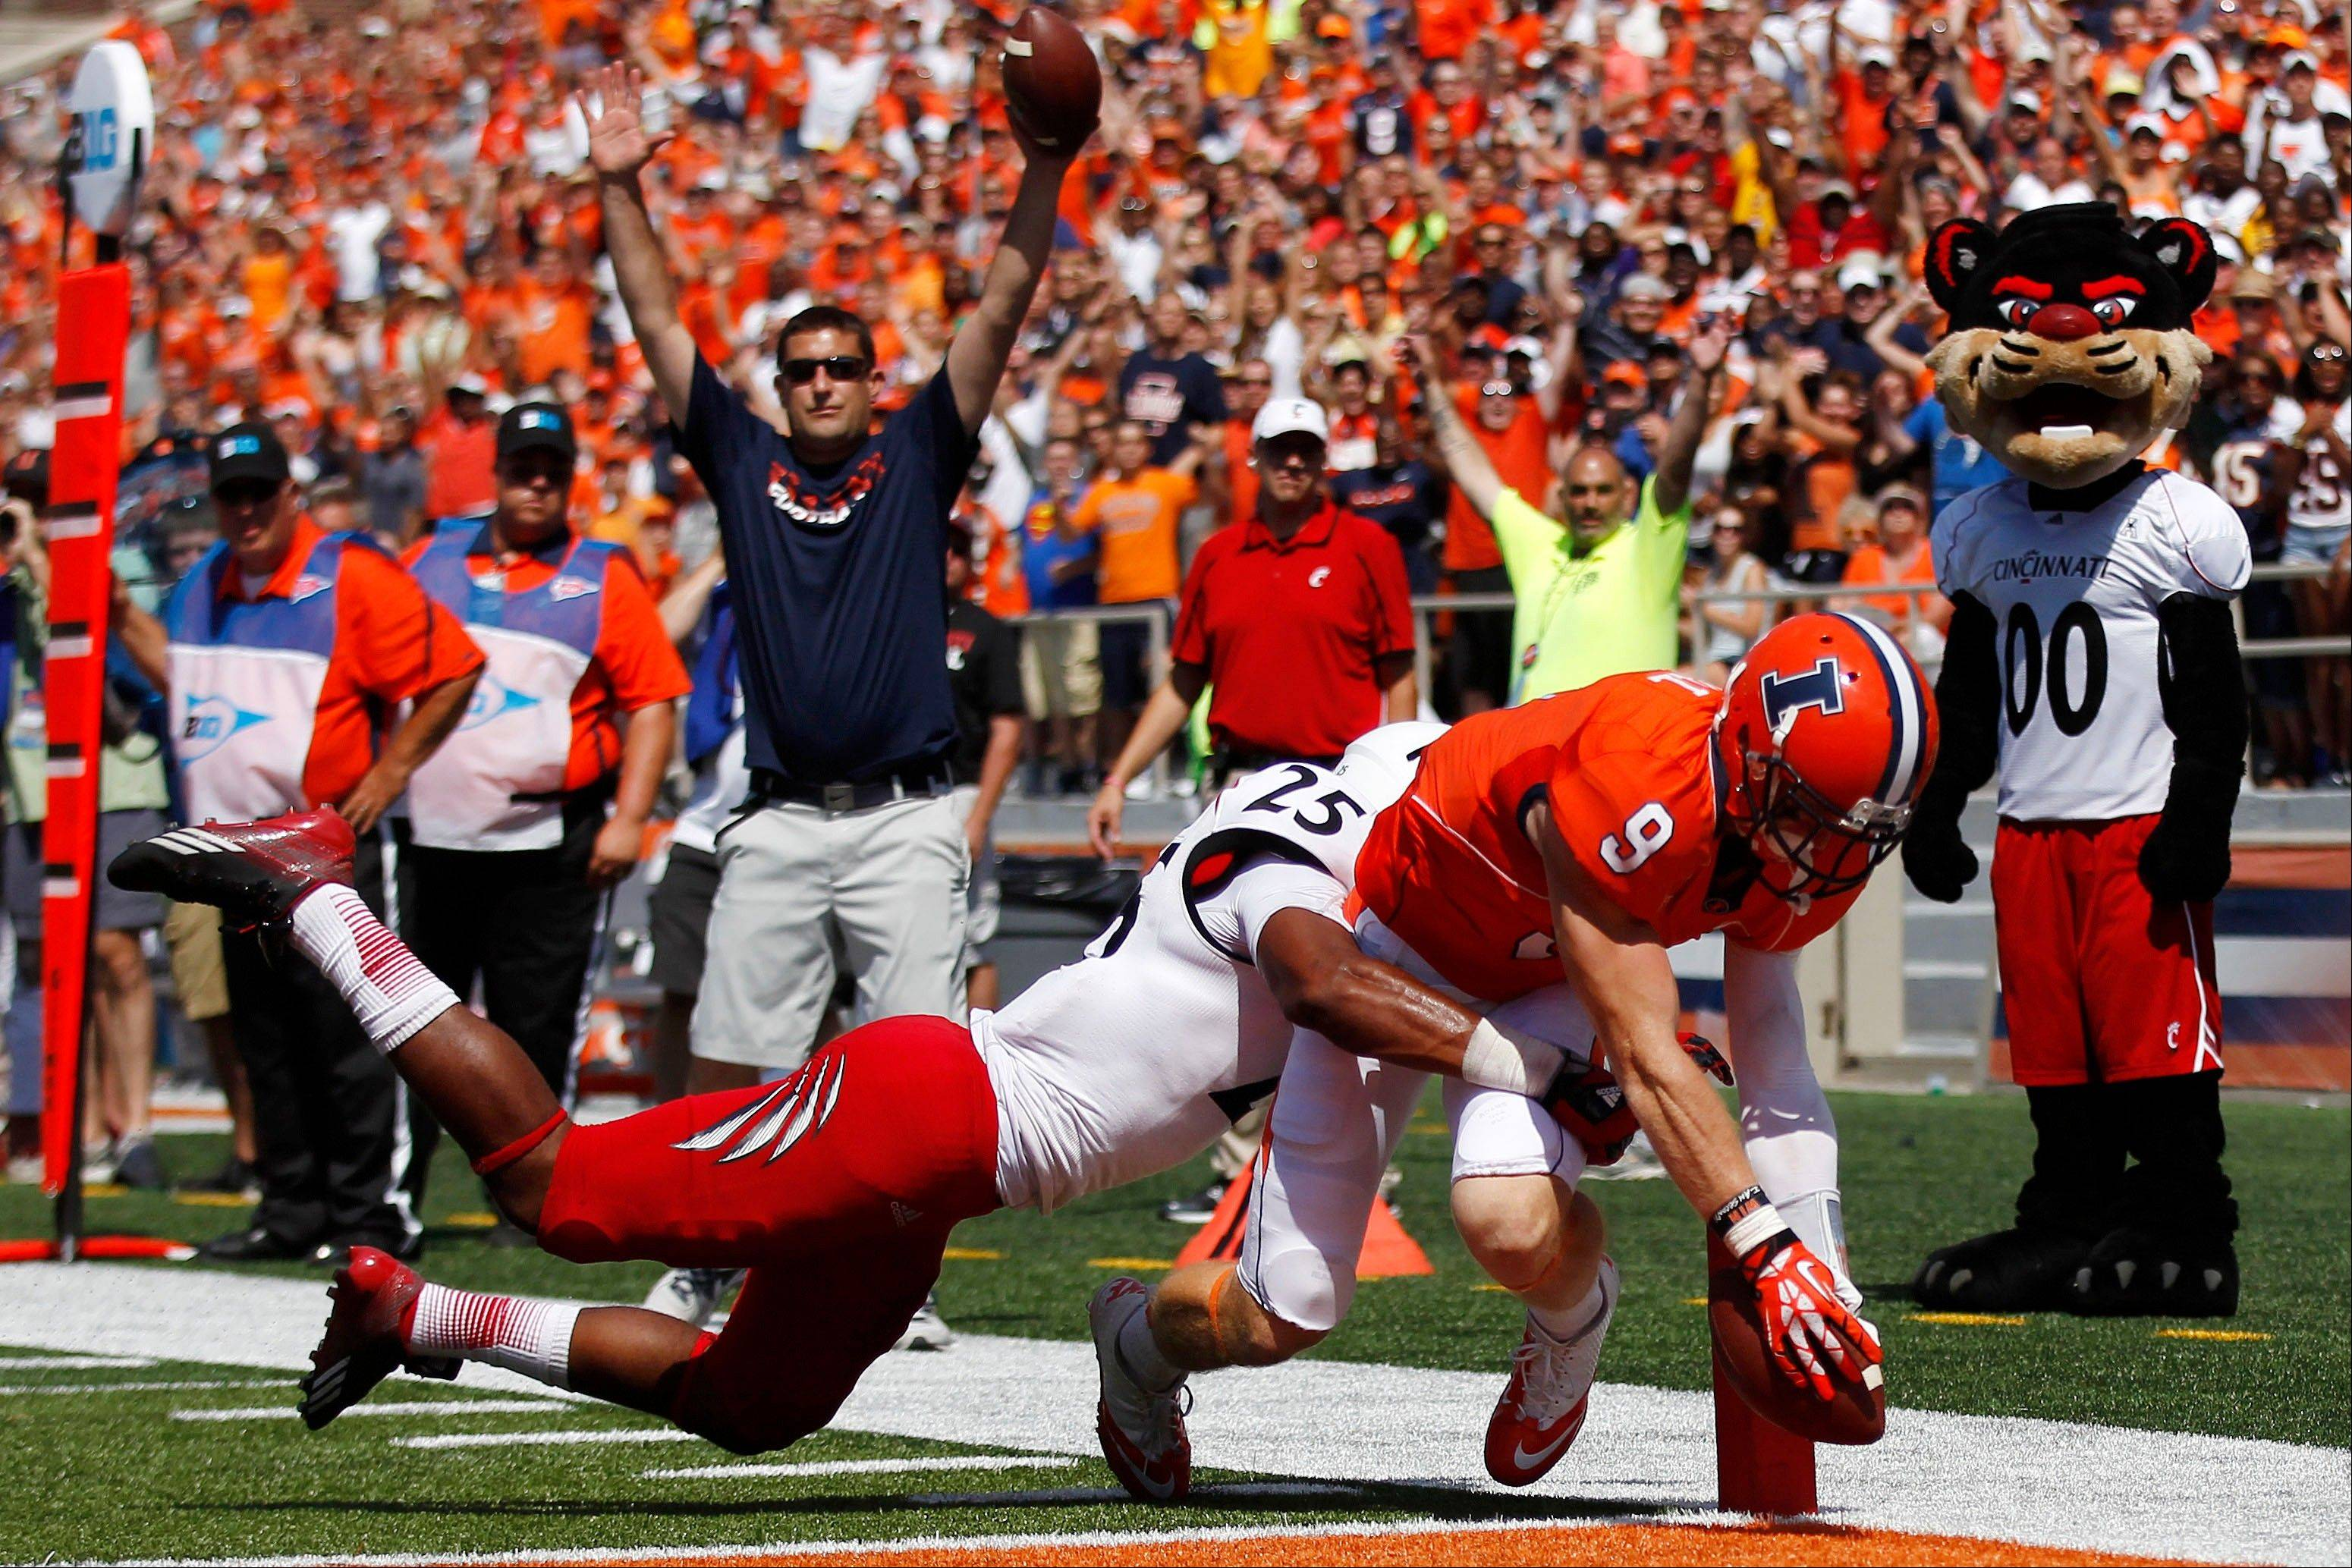 Illinois wide receiver Steve Hull cores a touchdown in front of Cincinnati safety Arryn Chenault during the second half of Saturday's game in Champaign.